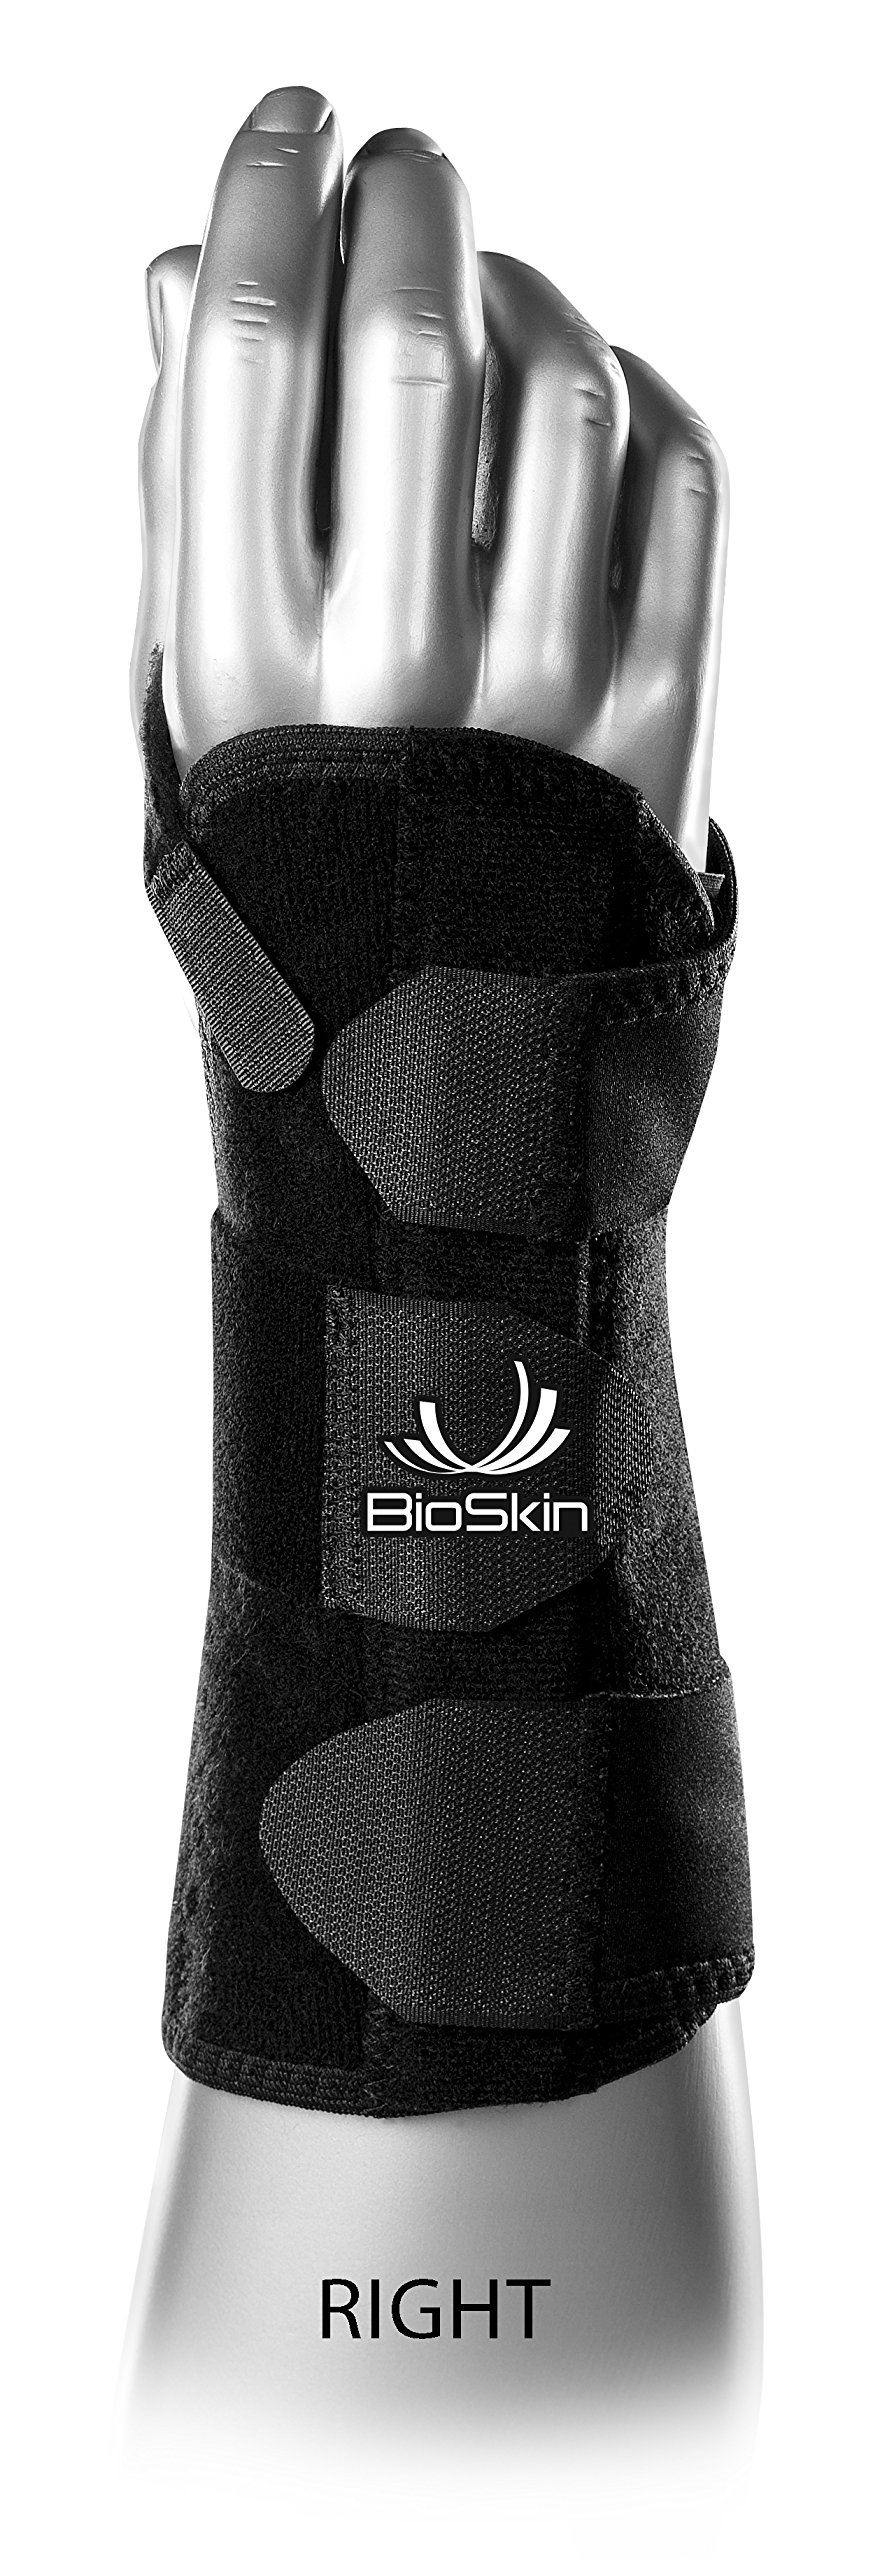 BioSkin DP3 Wrist Brace, Right, Medium/Large